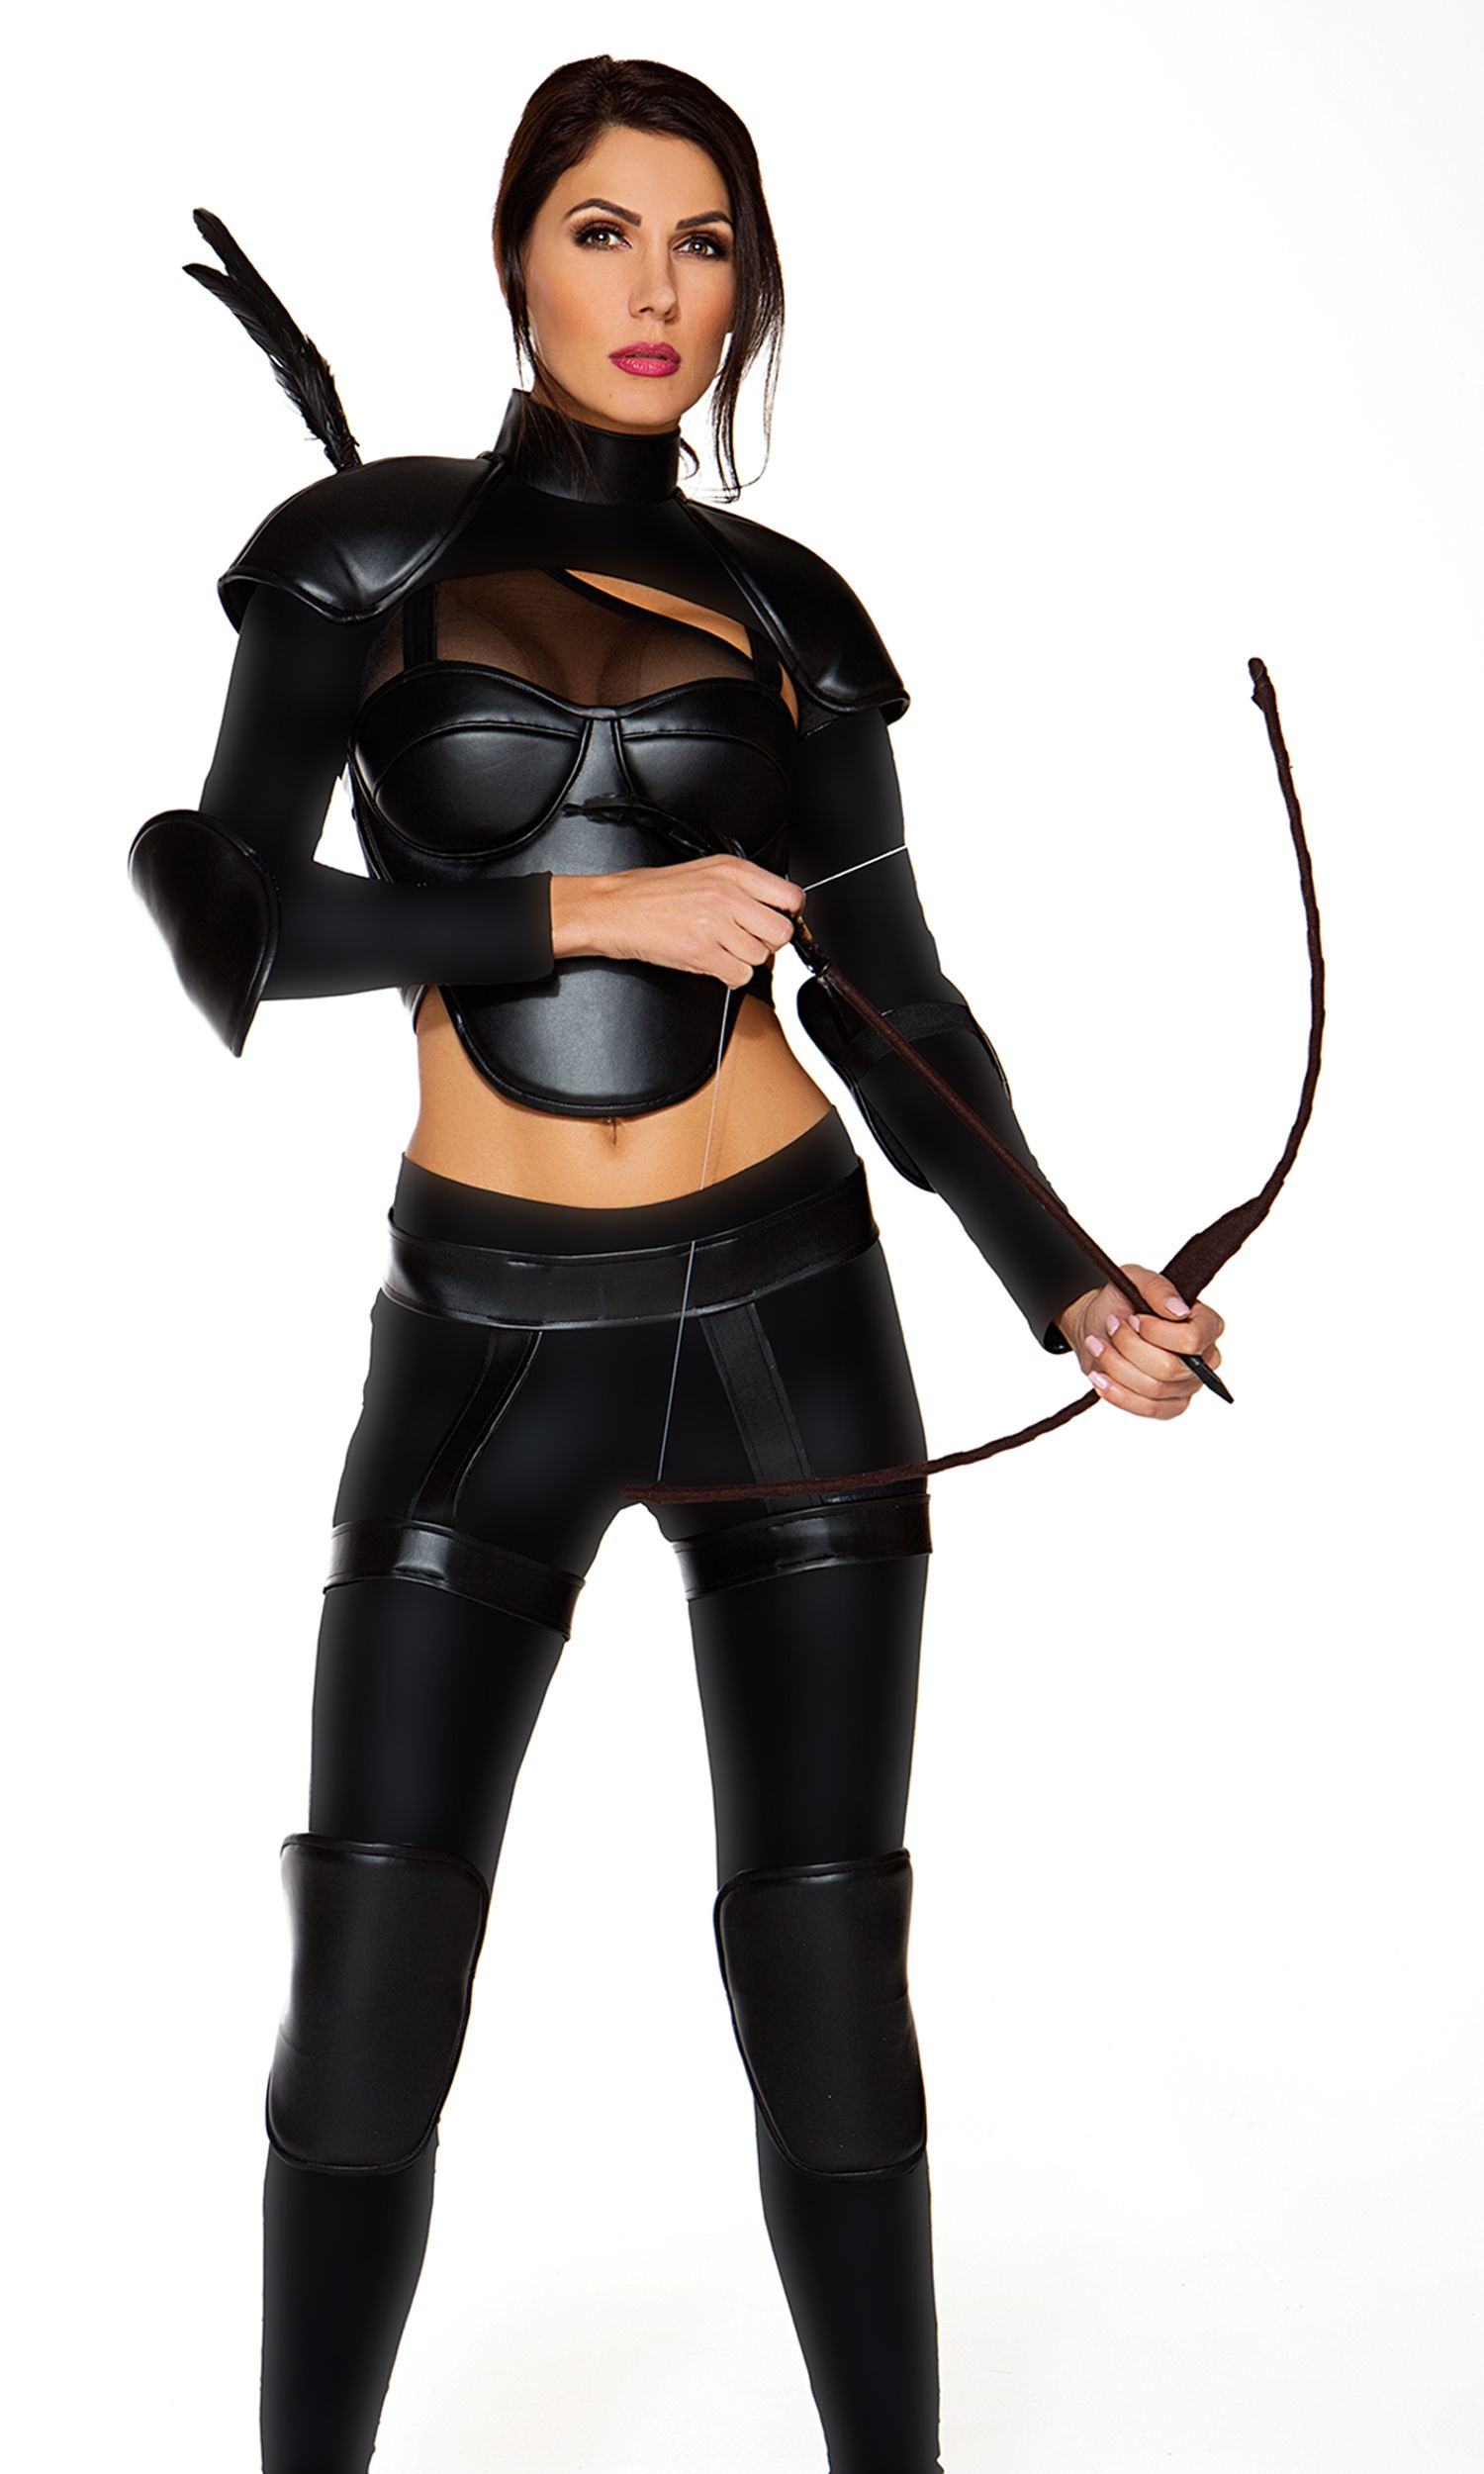 ForPlay Not A Game Sexy Movie Character Costume  sc 1 st  Pinterest & Not A Game Sexy Movie Character Costume | Movie character costumes ...